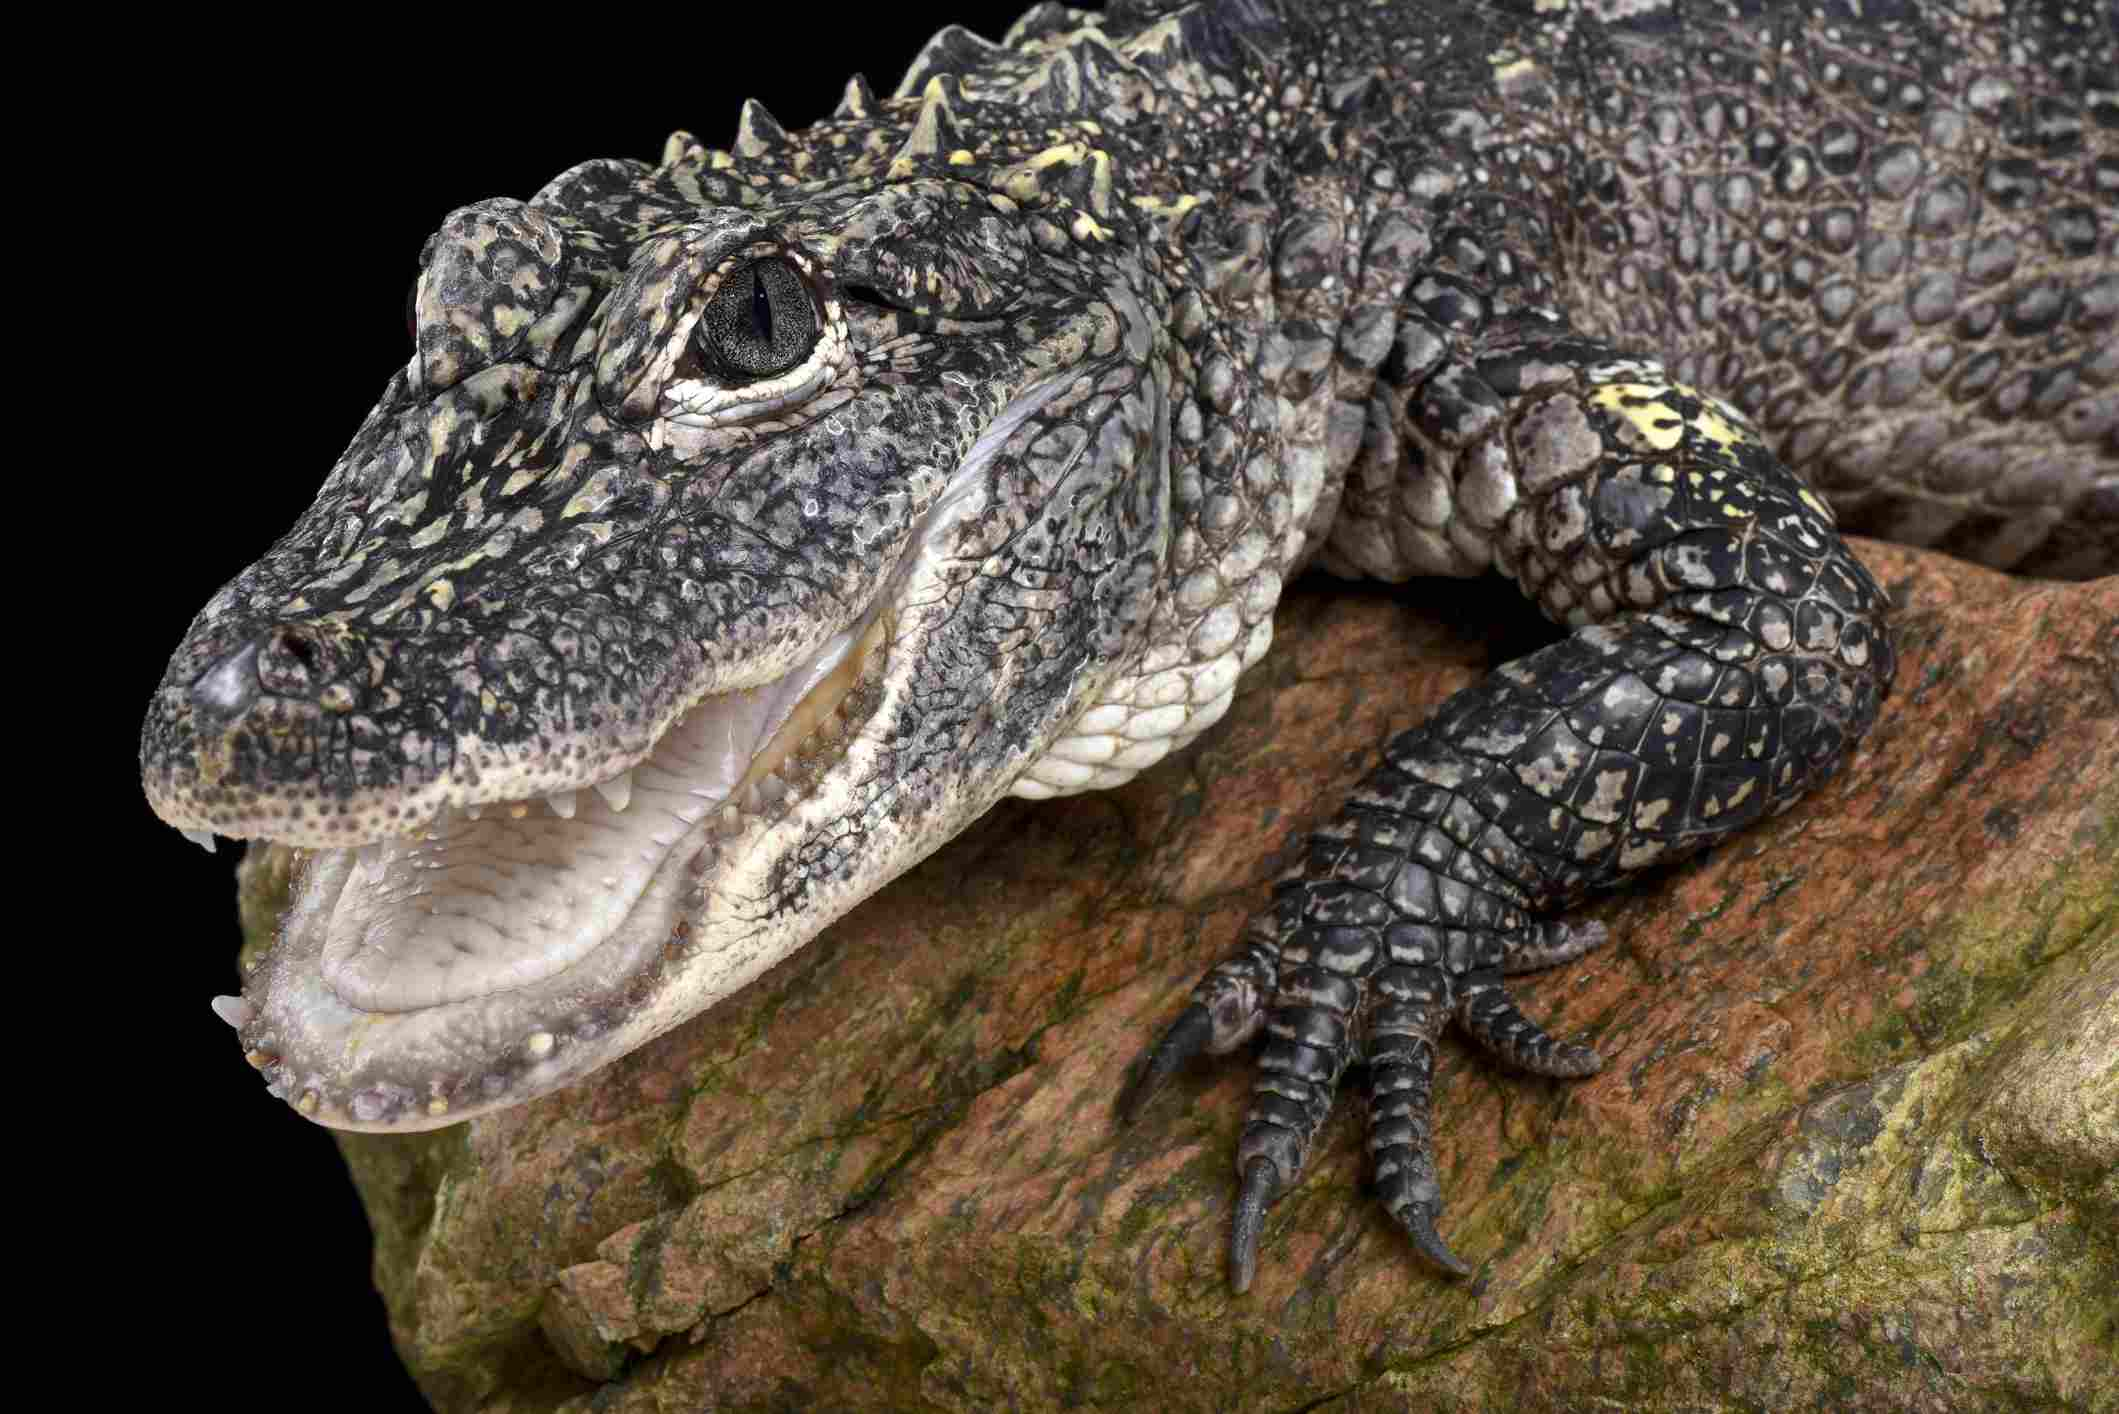 The Chinese alligator is critically endangered in the wild.